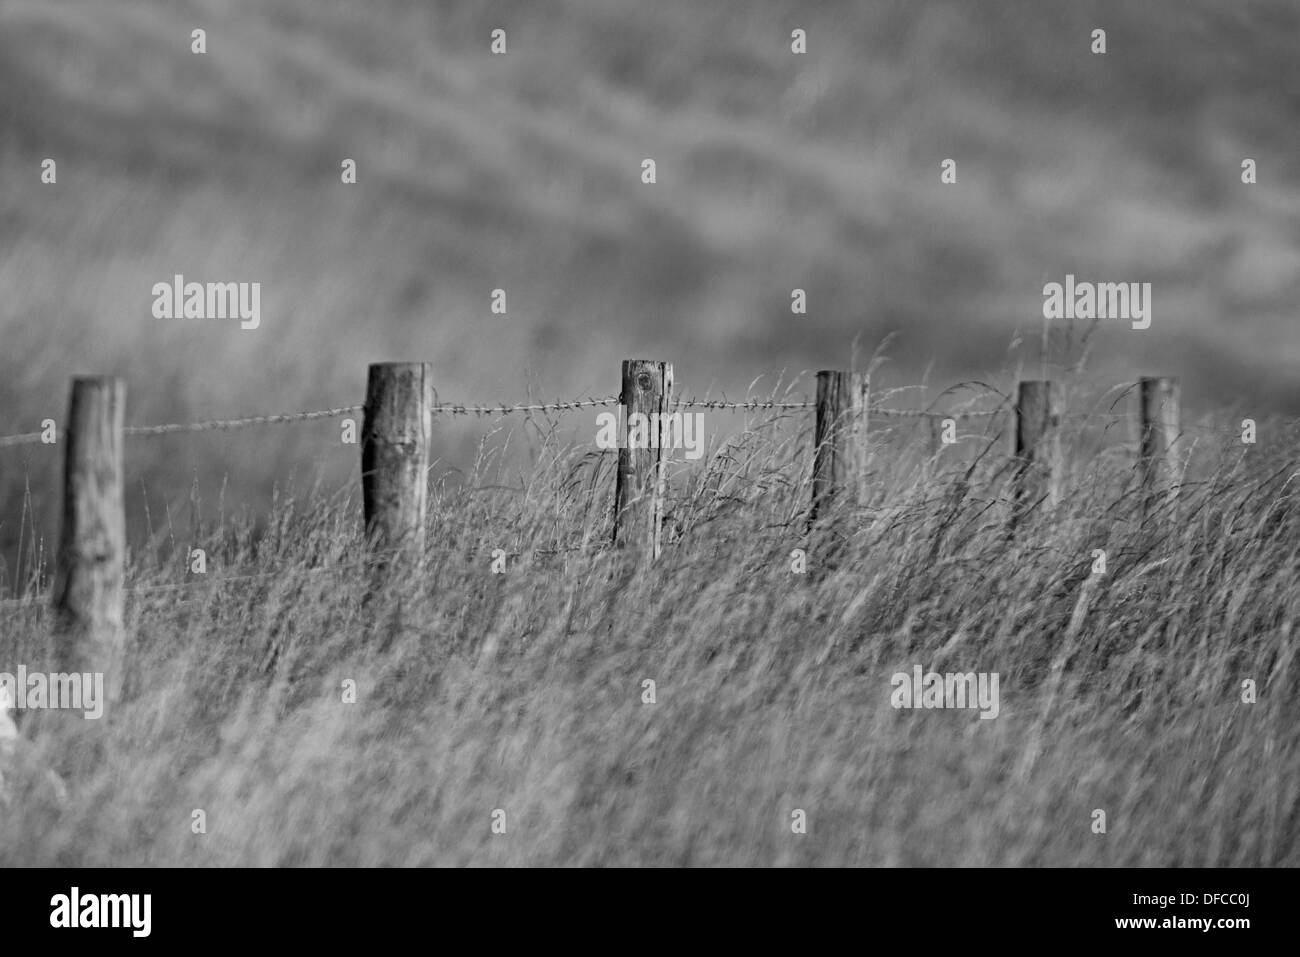 A Barbed Wire Posted Fence Amonst A Field Of Rye Grass And Wild Oat Plant Uk (Black and white) - Stock Image